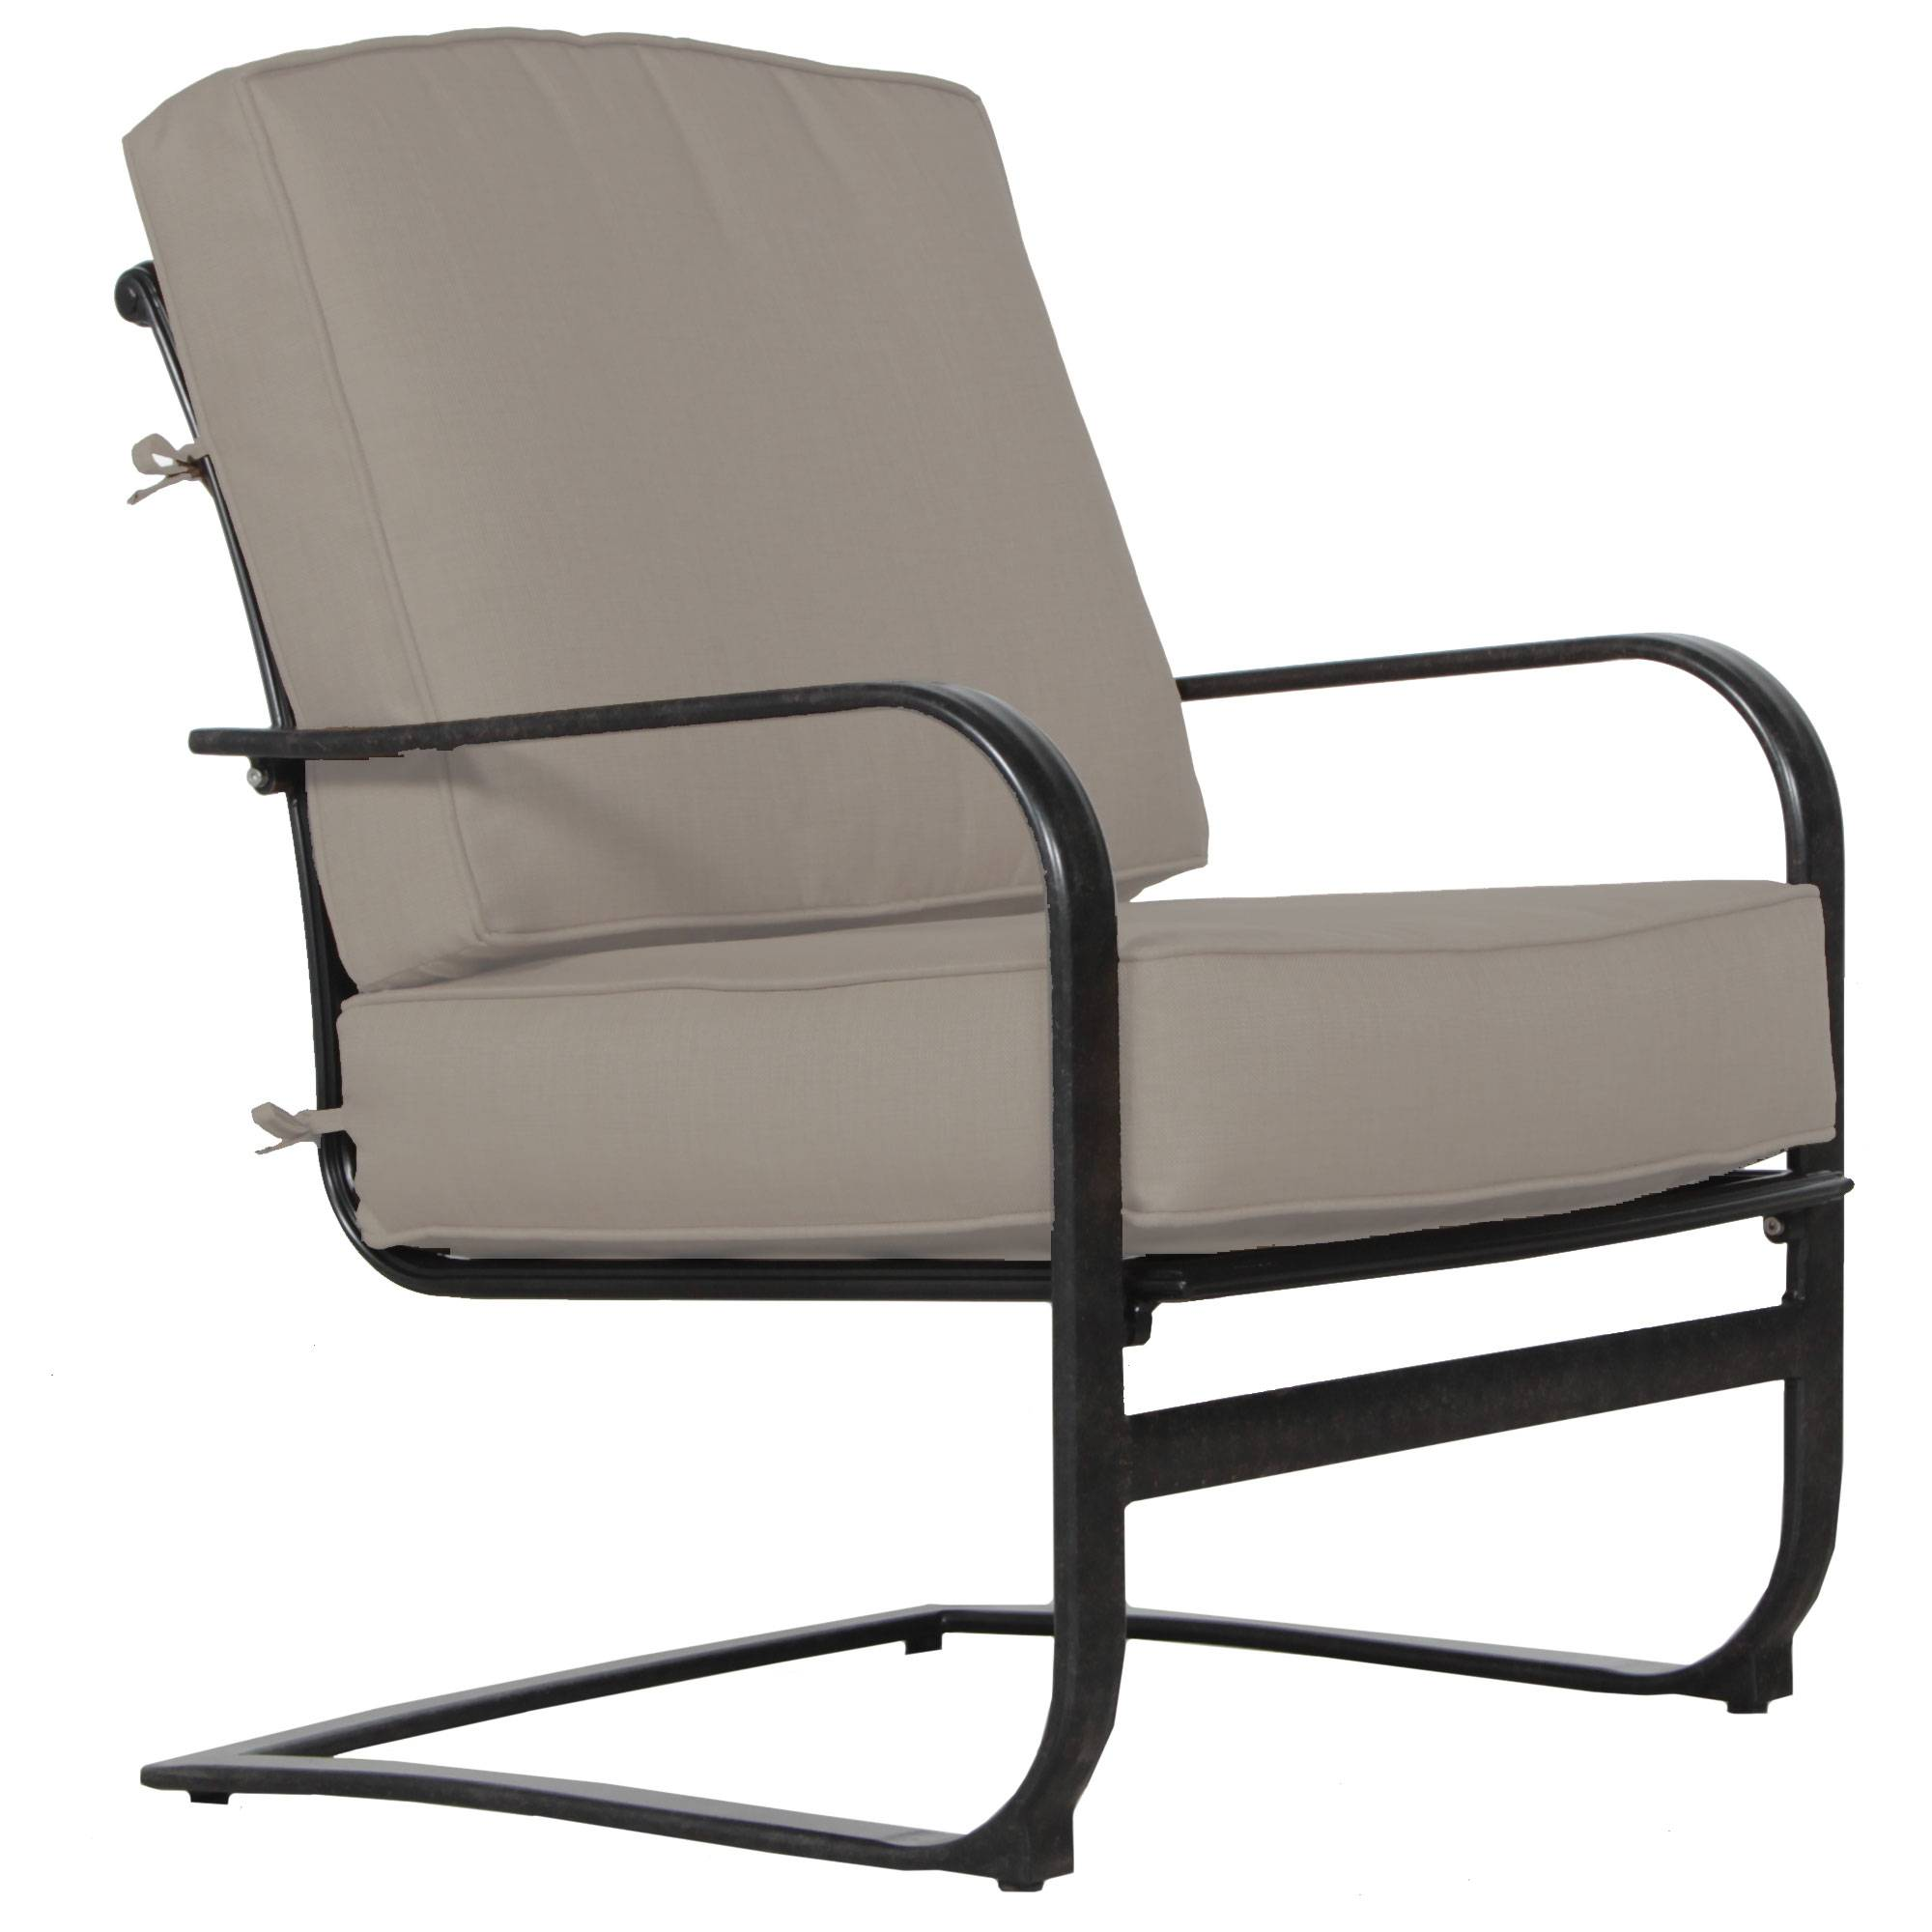 Alfresco Home Lisbon Lounge Chair with Cushion  - Black/Ash - Size: One Size